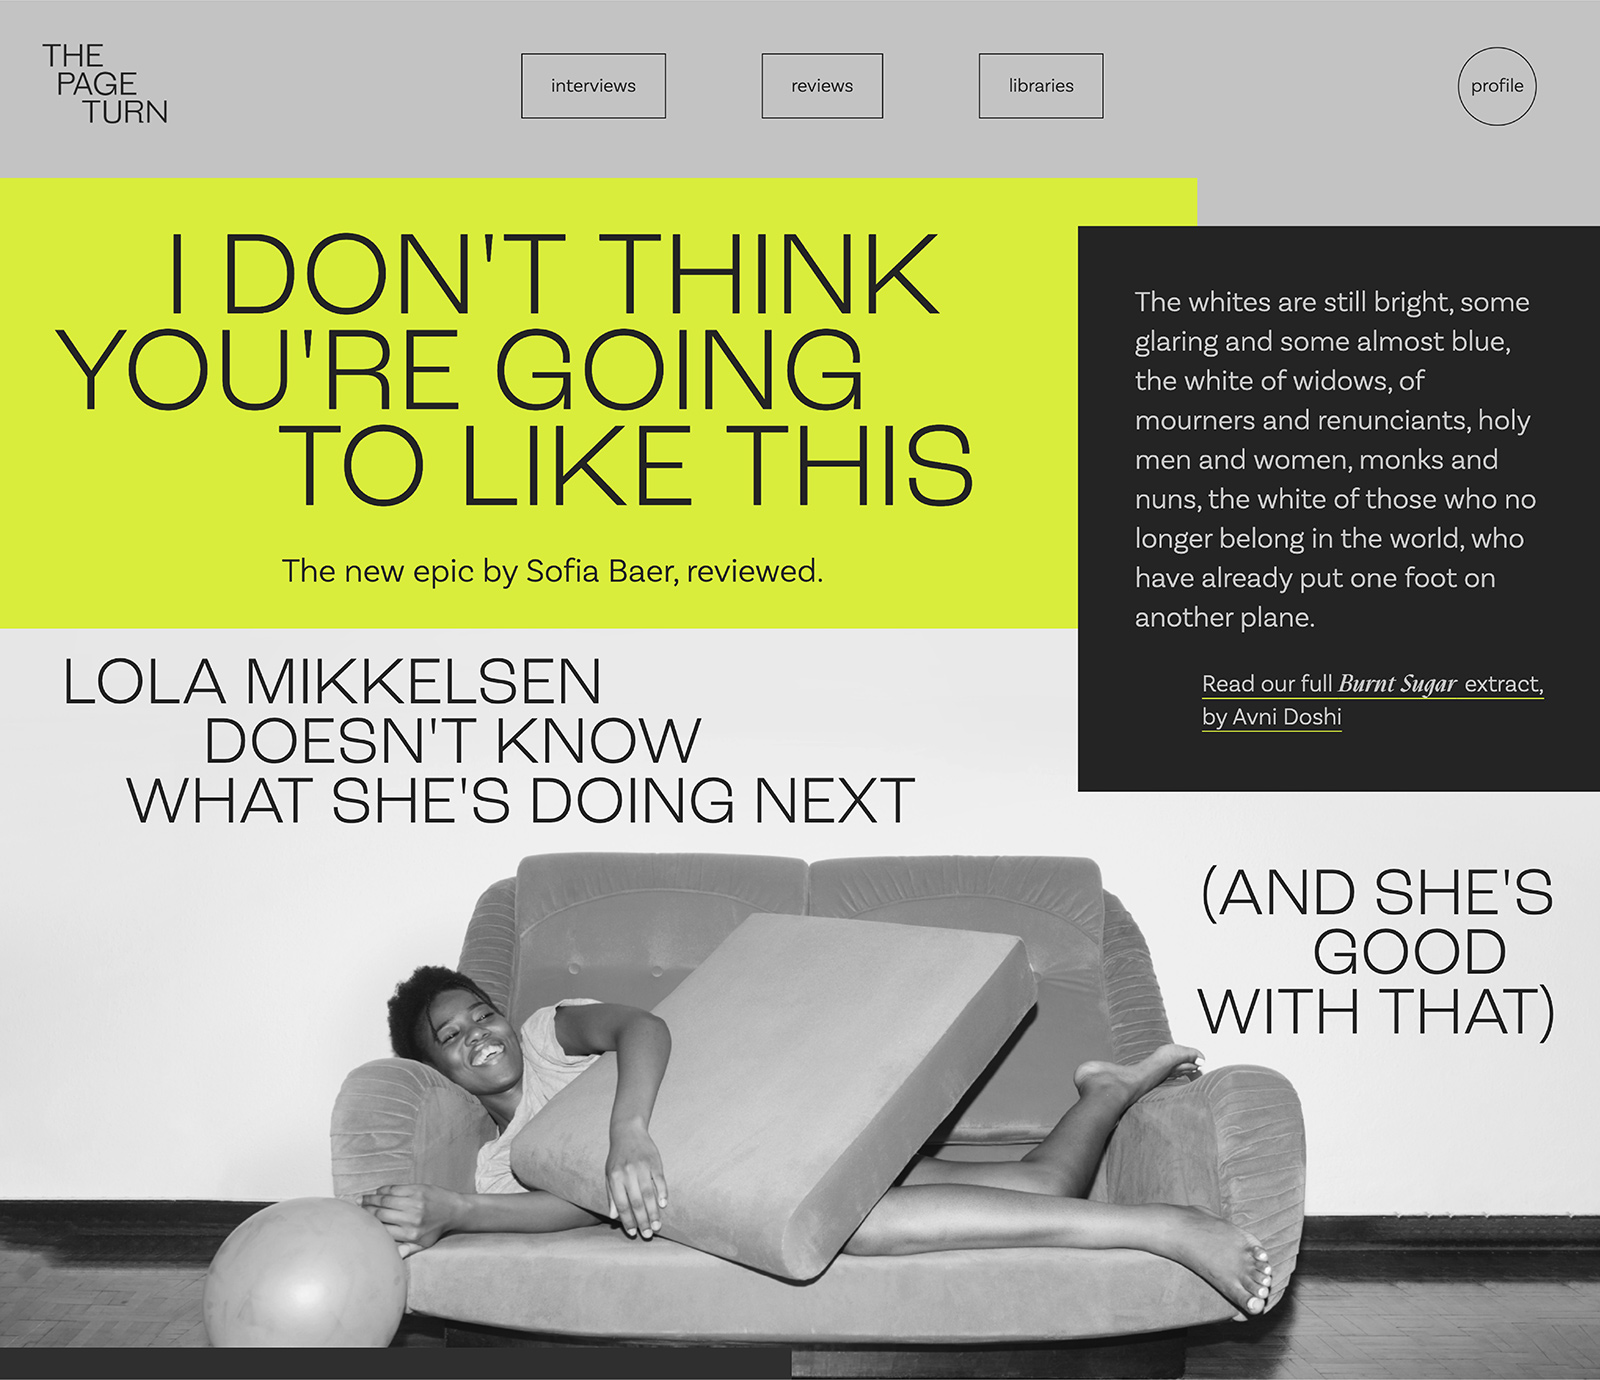 the page turn homepage, with a photo of a woman lying on a sofa and the headline 'i don't think you're going to like this'